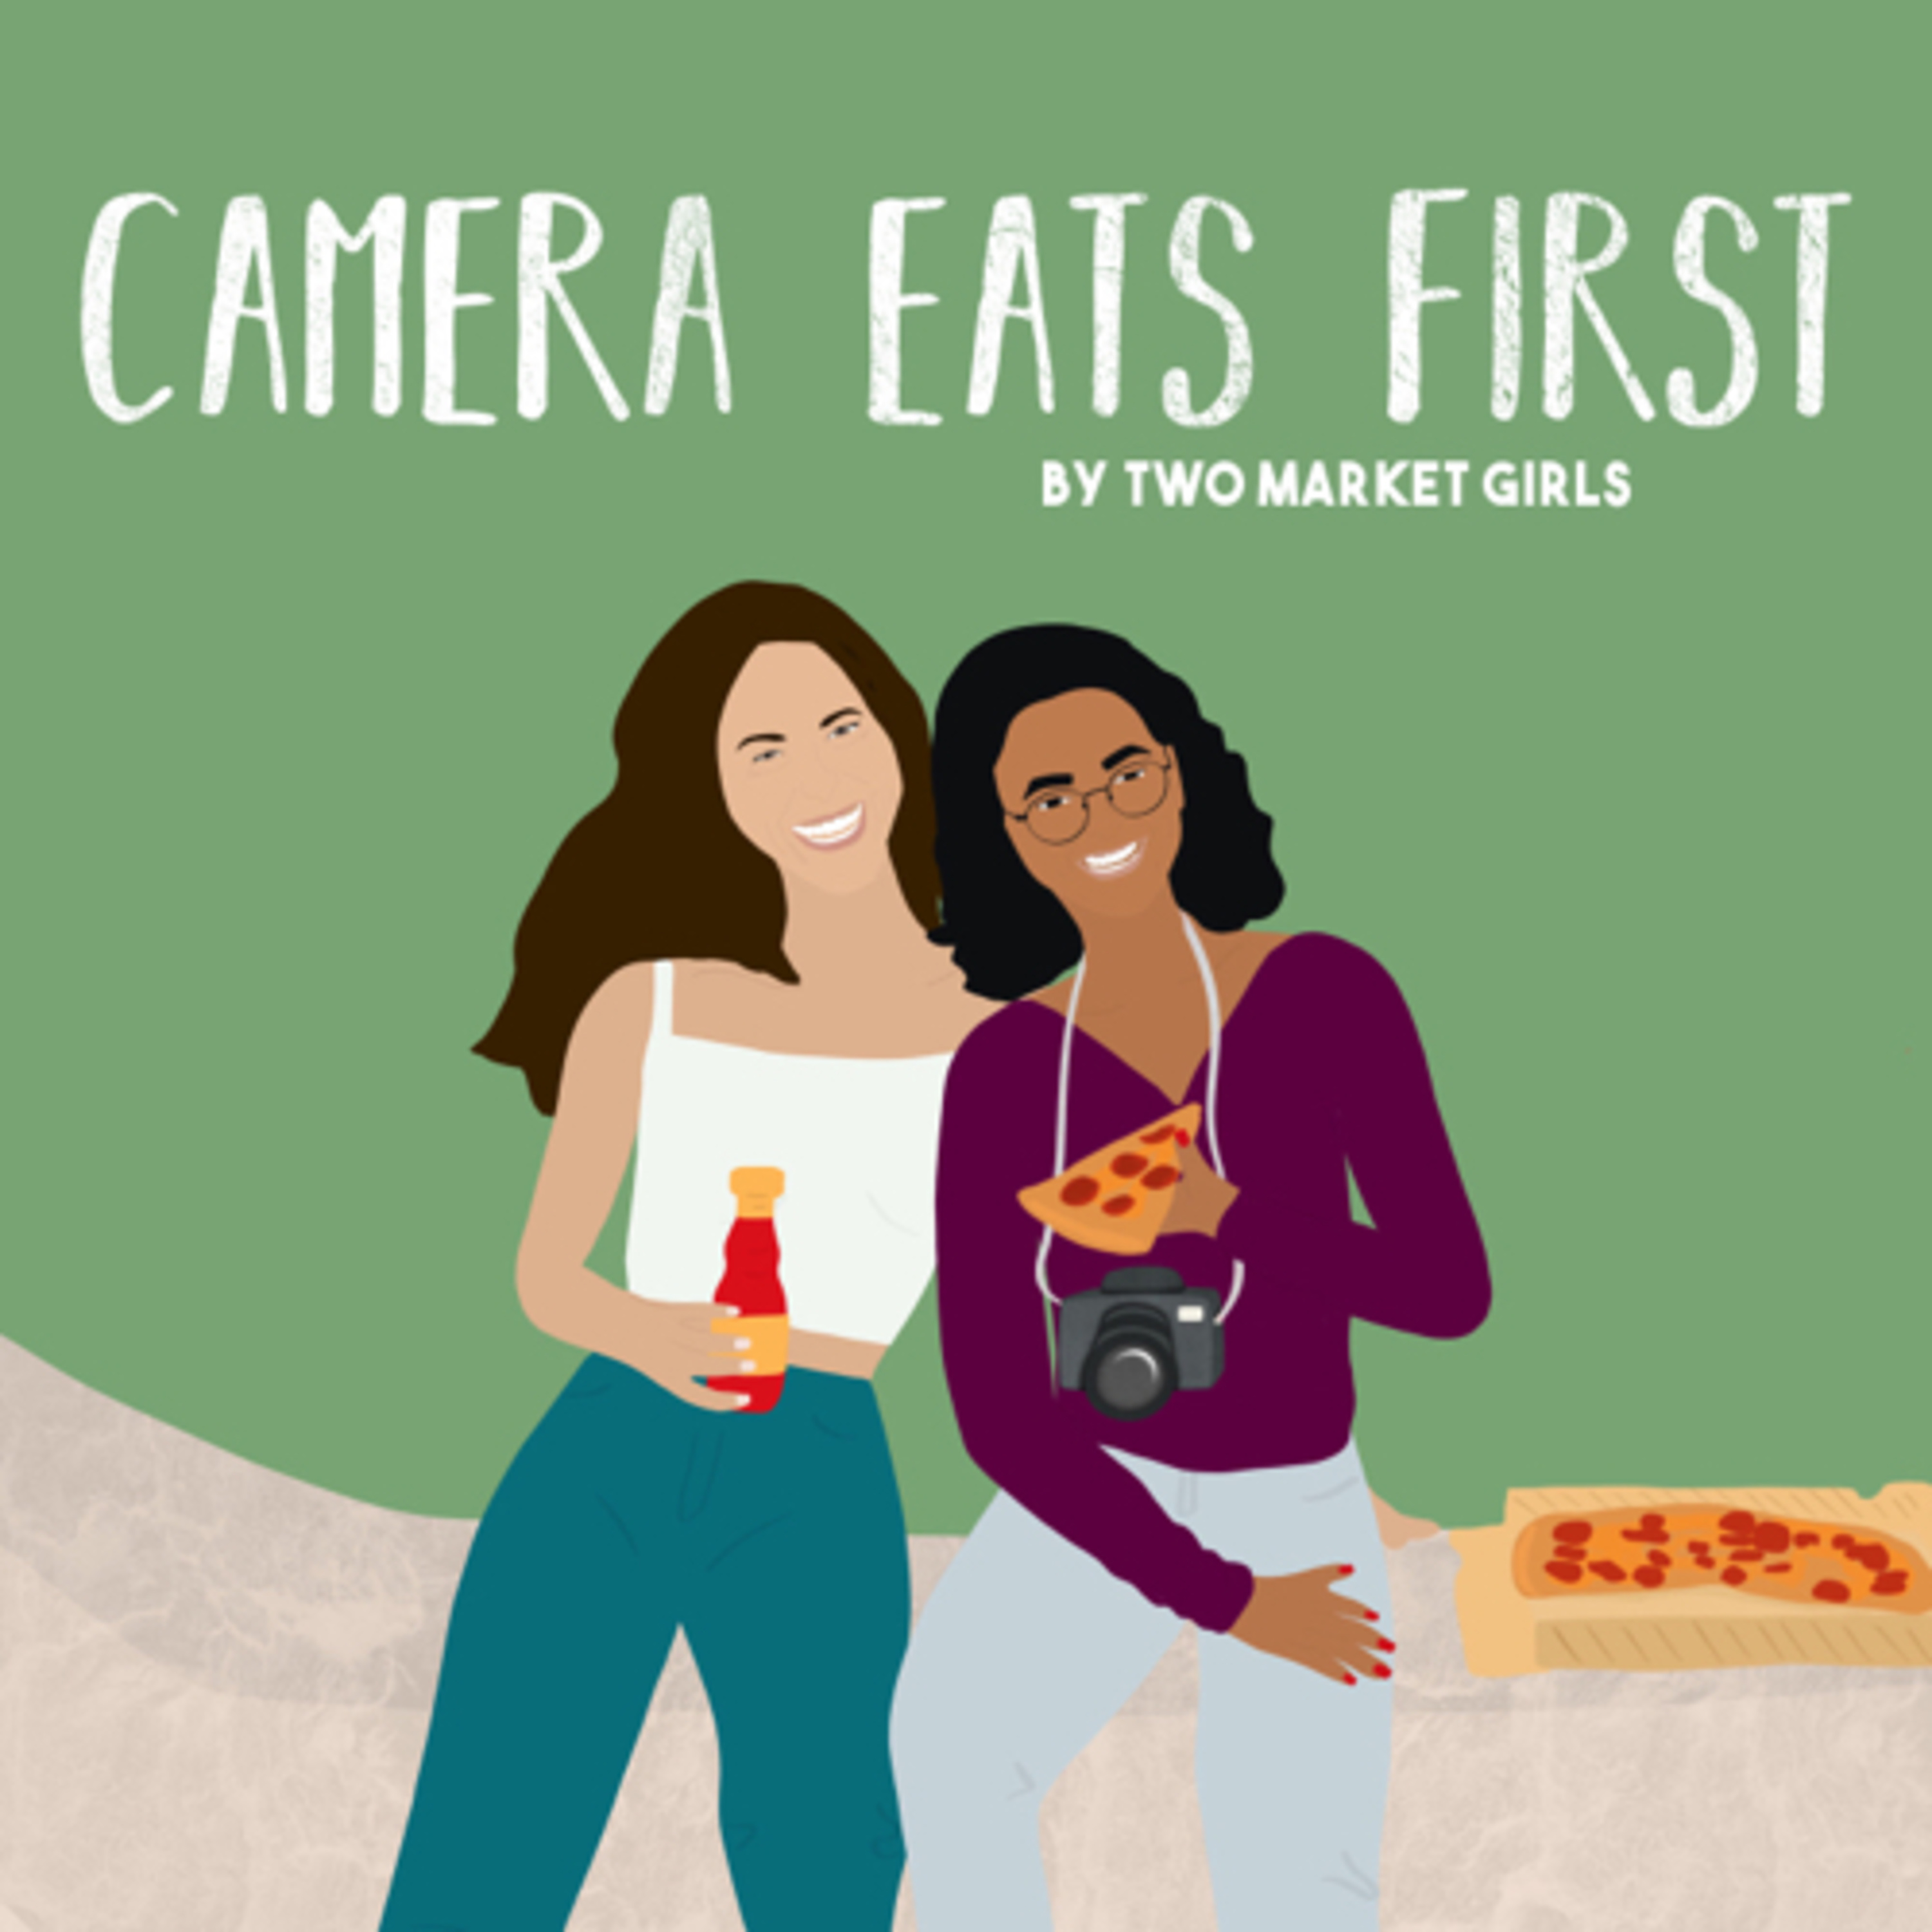 New Content and Eating Habits During Social Distancing